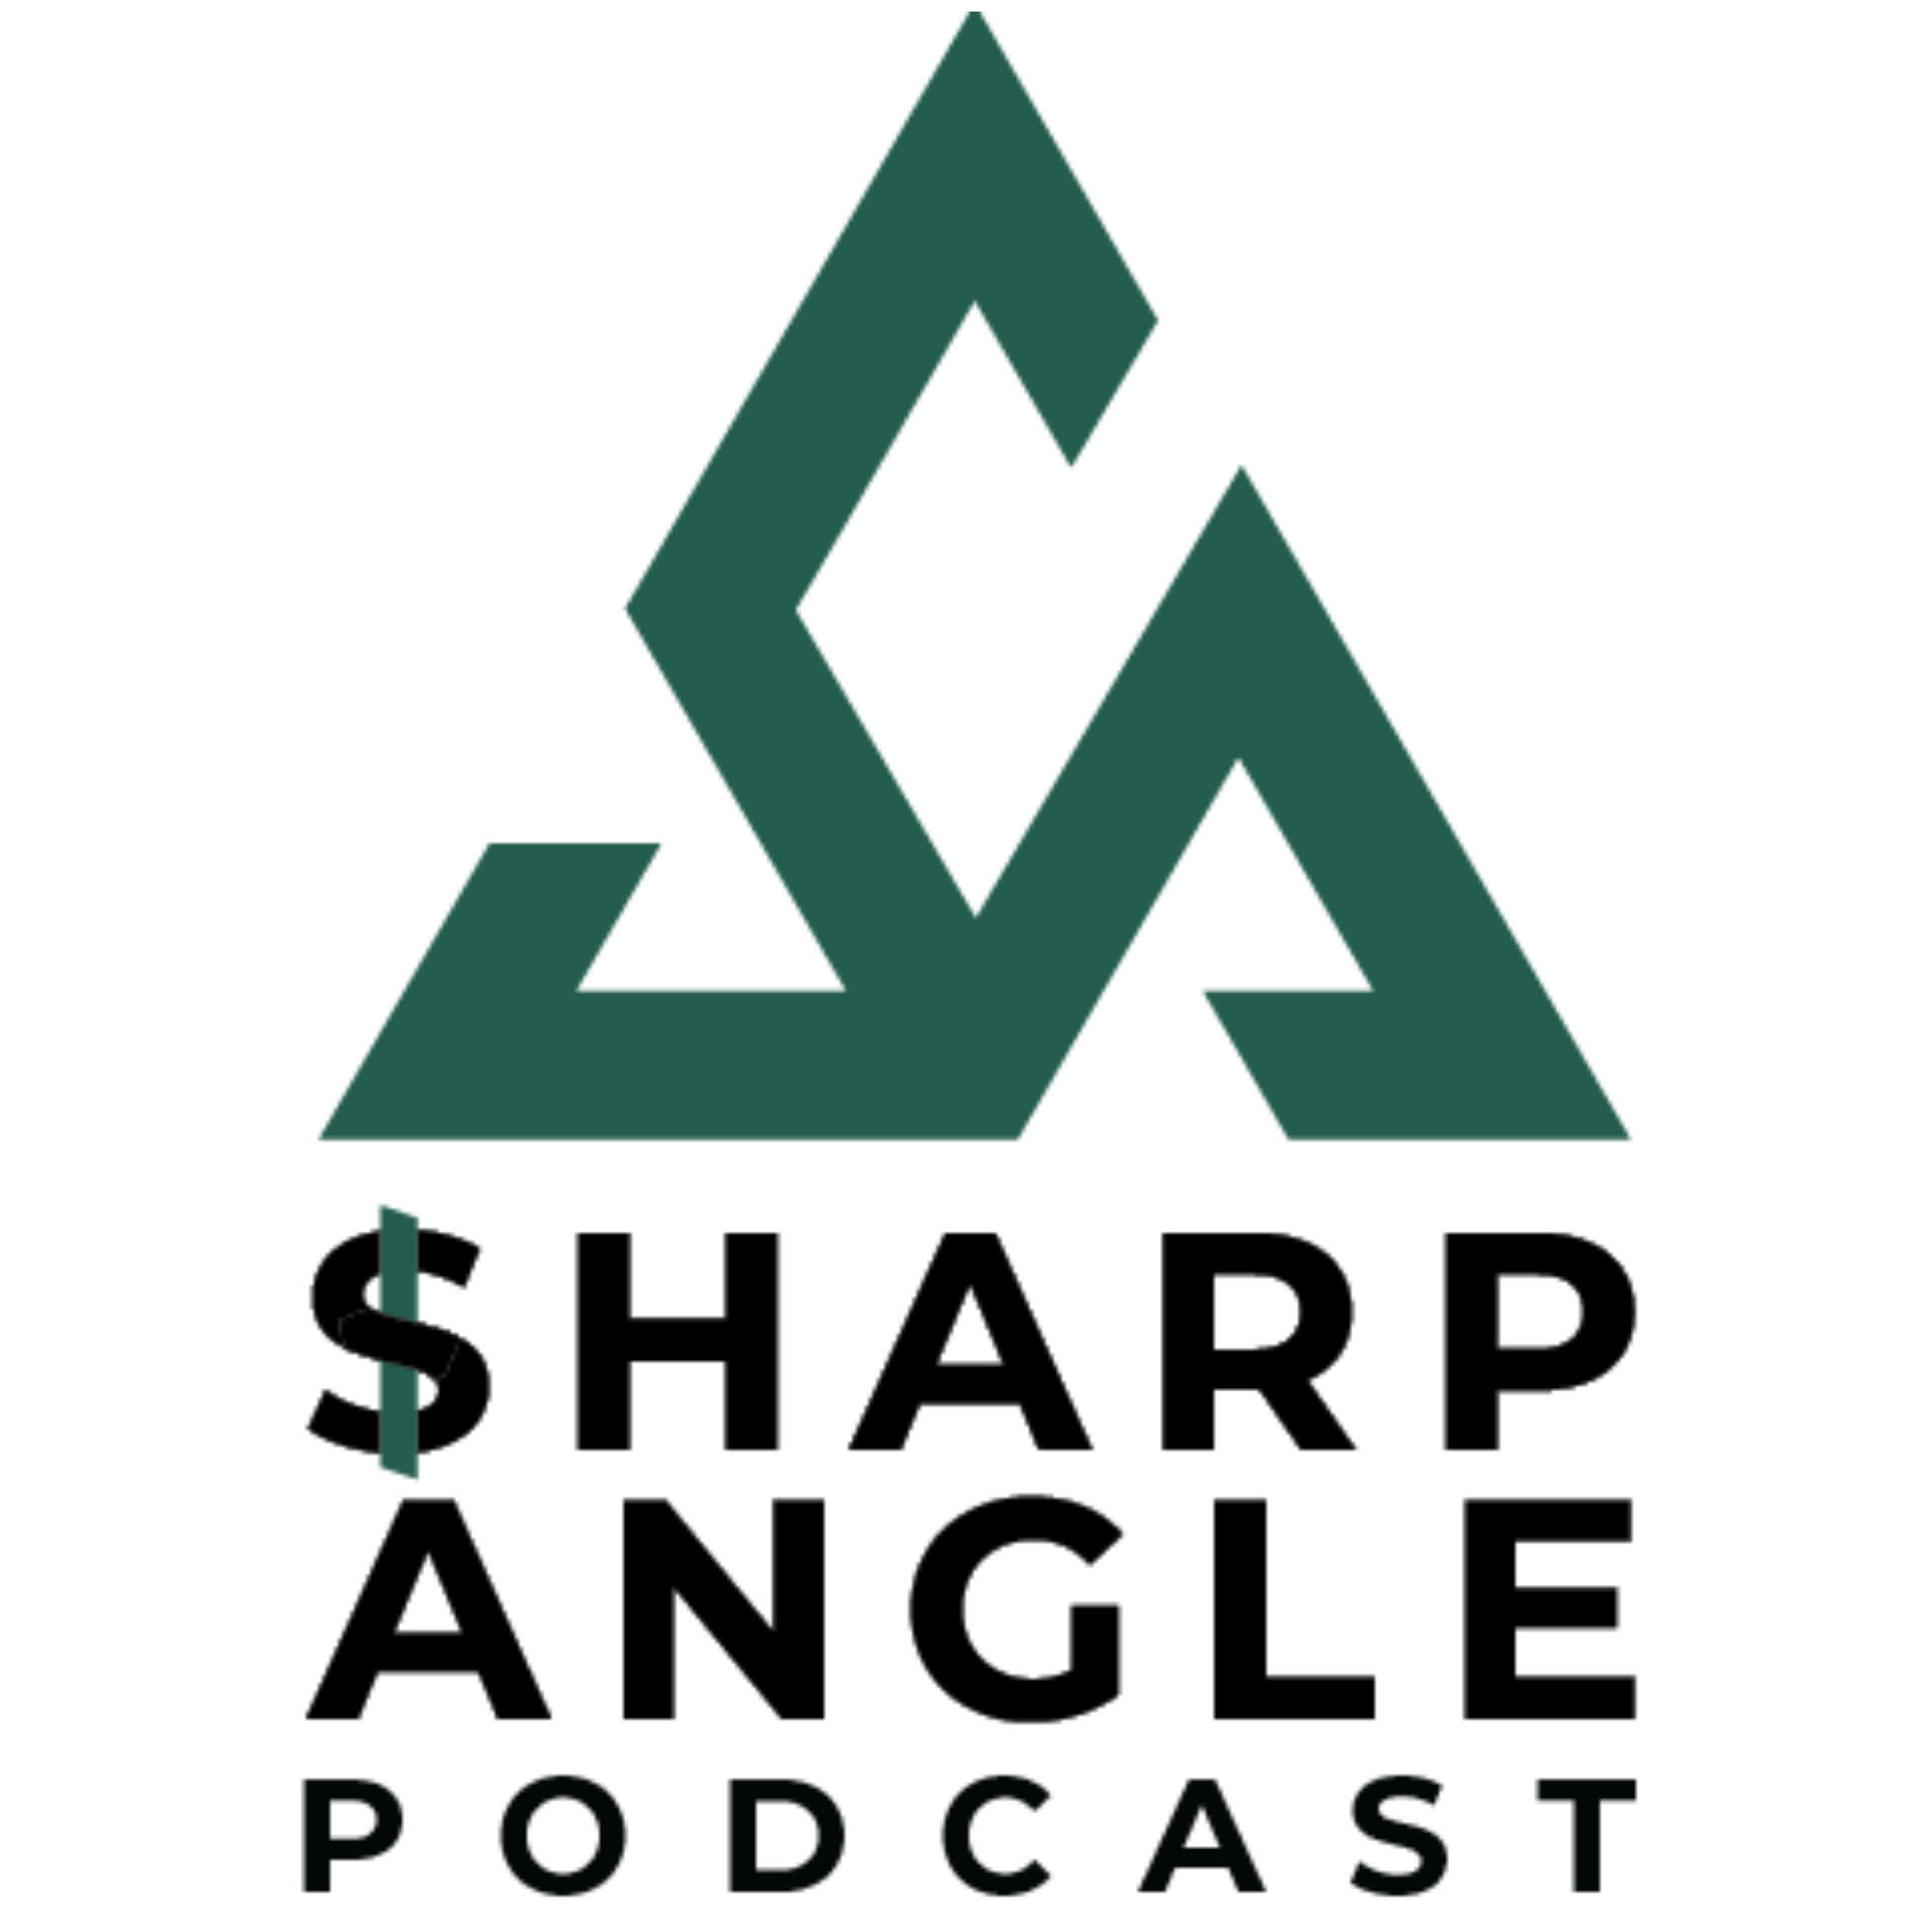 Sharp Angle Podcast